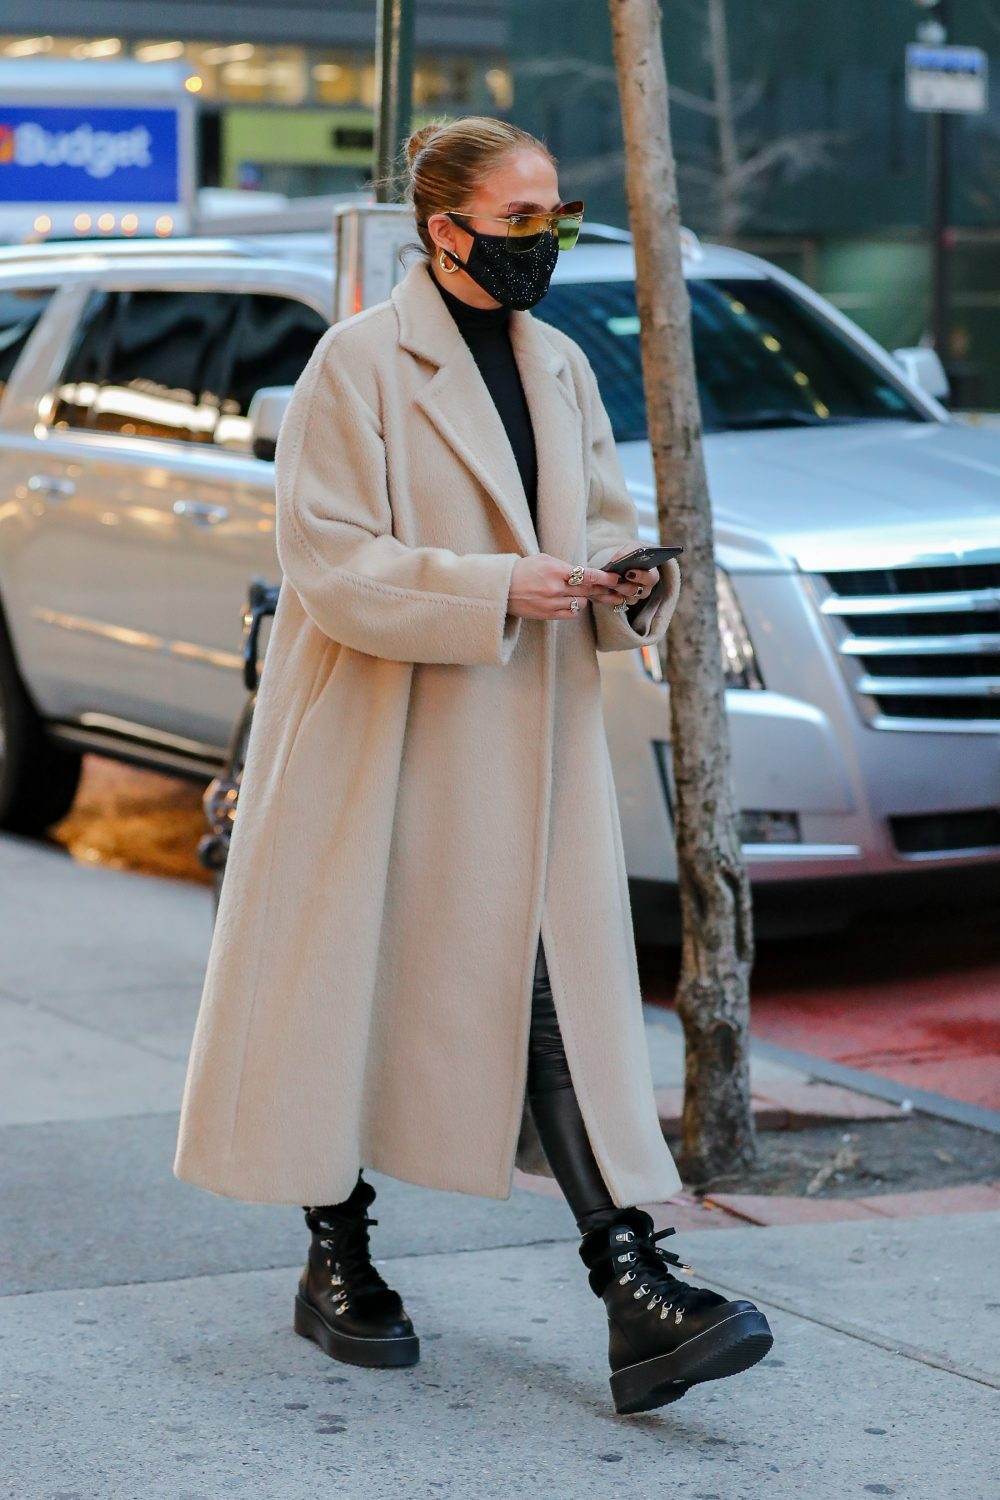 Jennifer Lopez was spotted shopping for Christmas while visiting Dior and Hermes stores in New York City